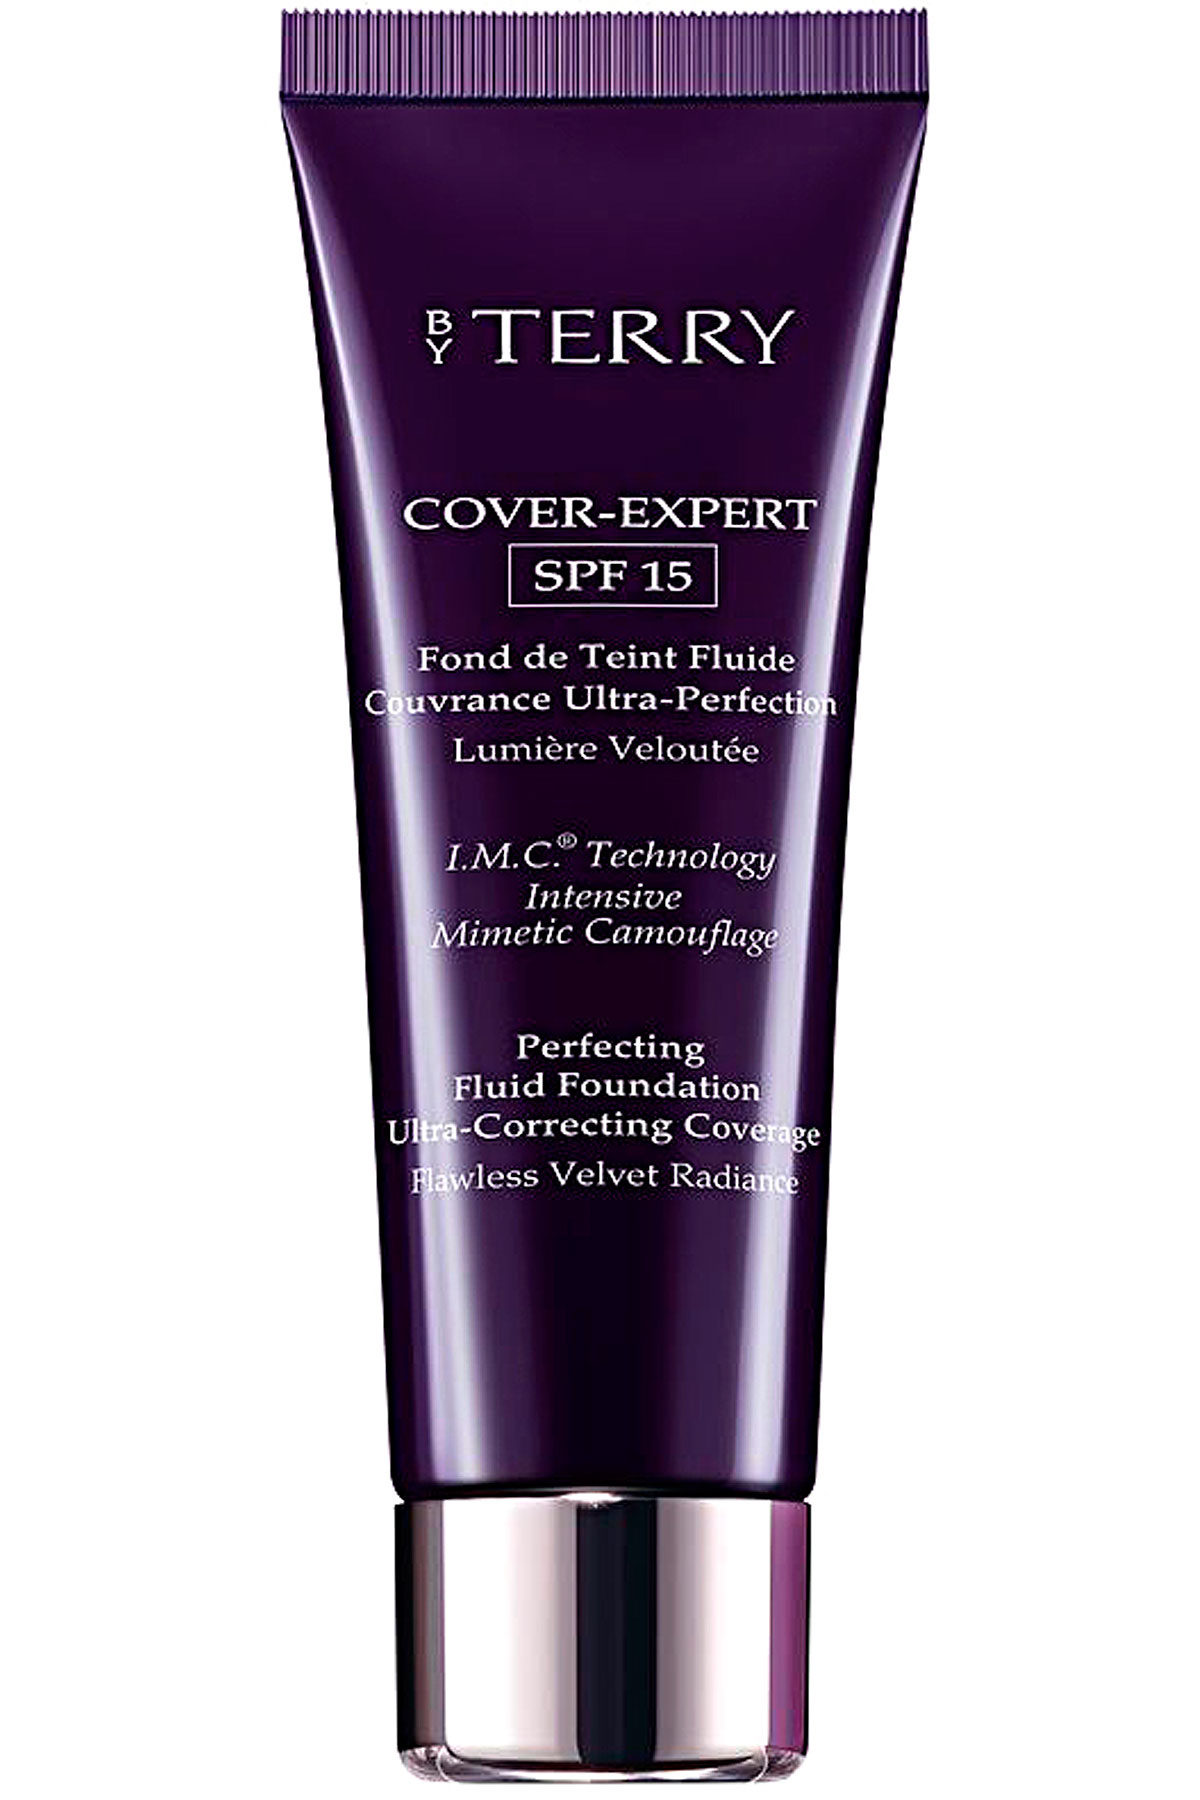 By Terry Makeup for Women, Cover-expert Spf15 - N.2 Neutral Beige - 35 Ml, Neutral Beige, 2019, 35 ml